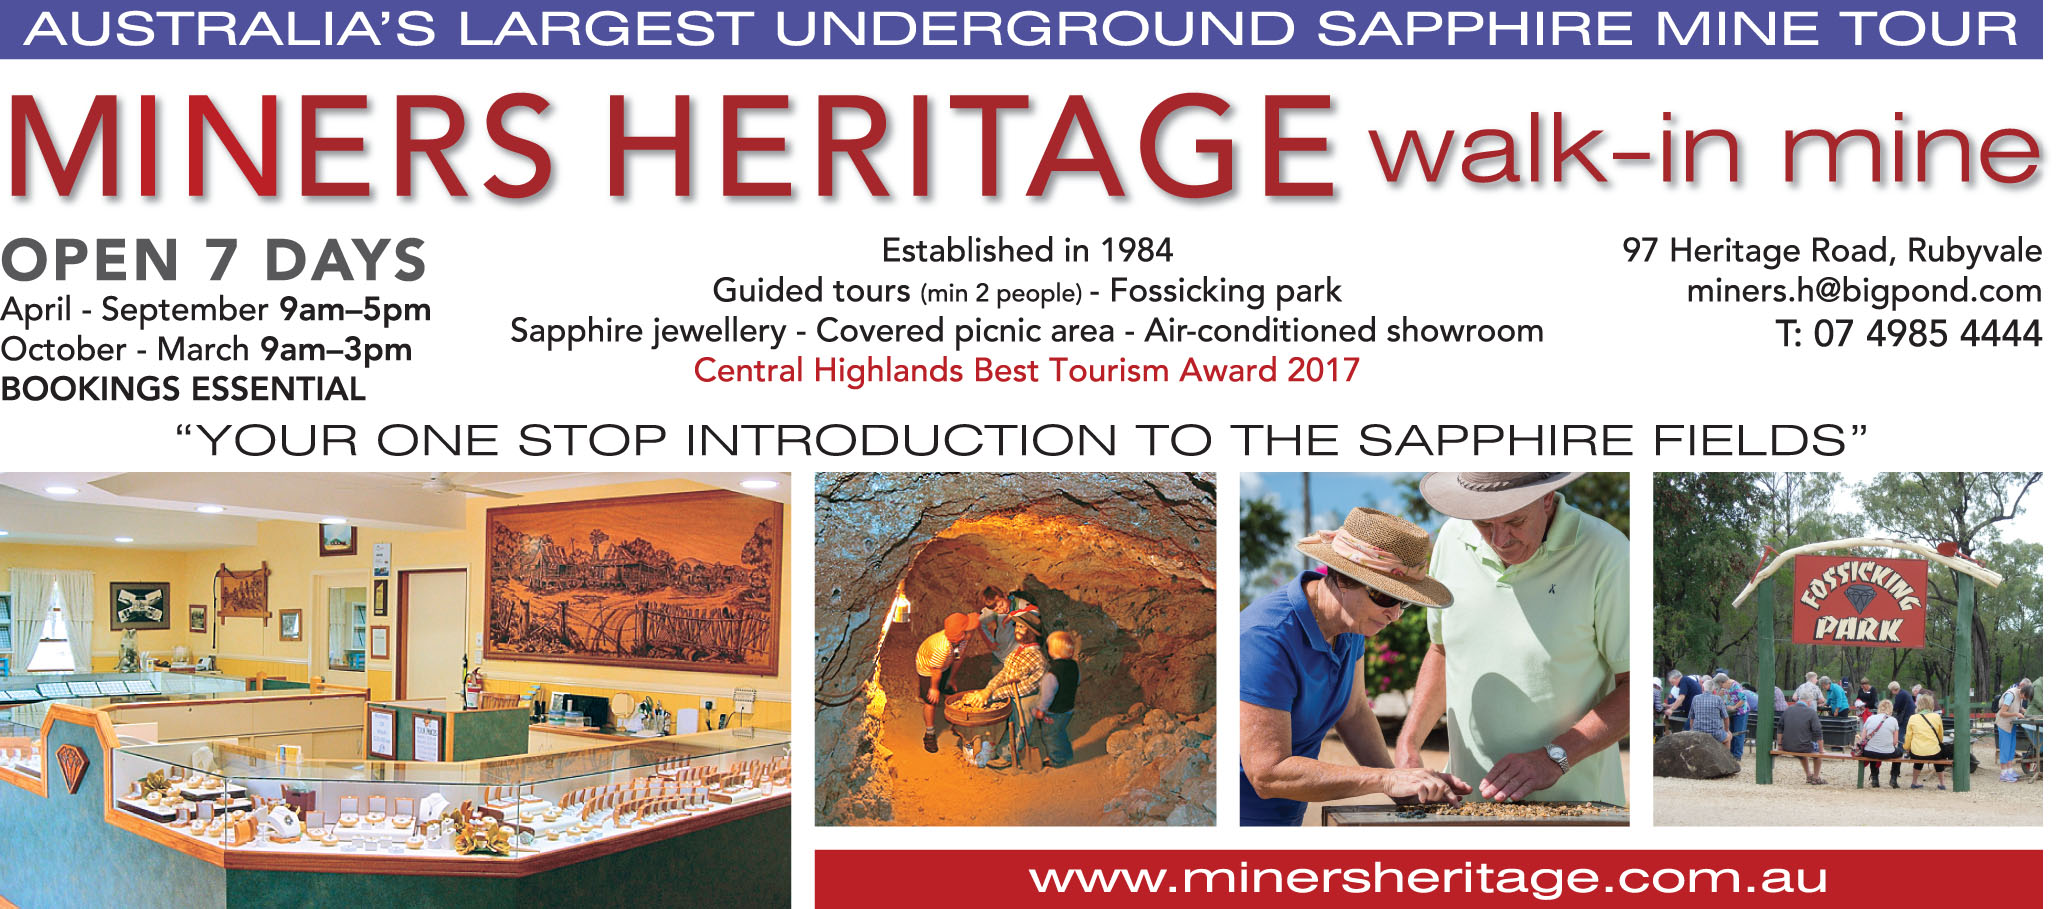 Miners Heritage walk-in mine tours